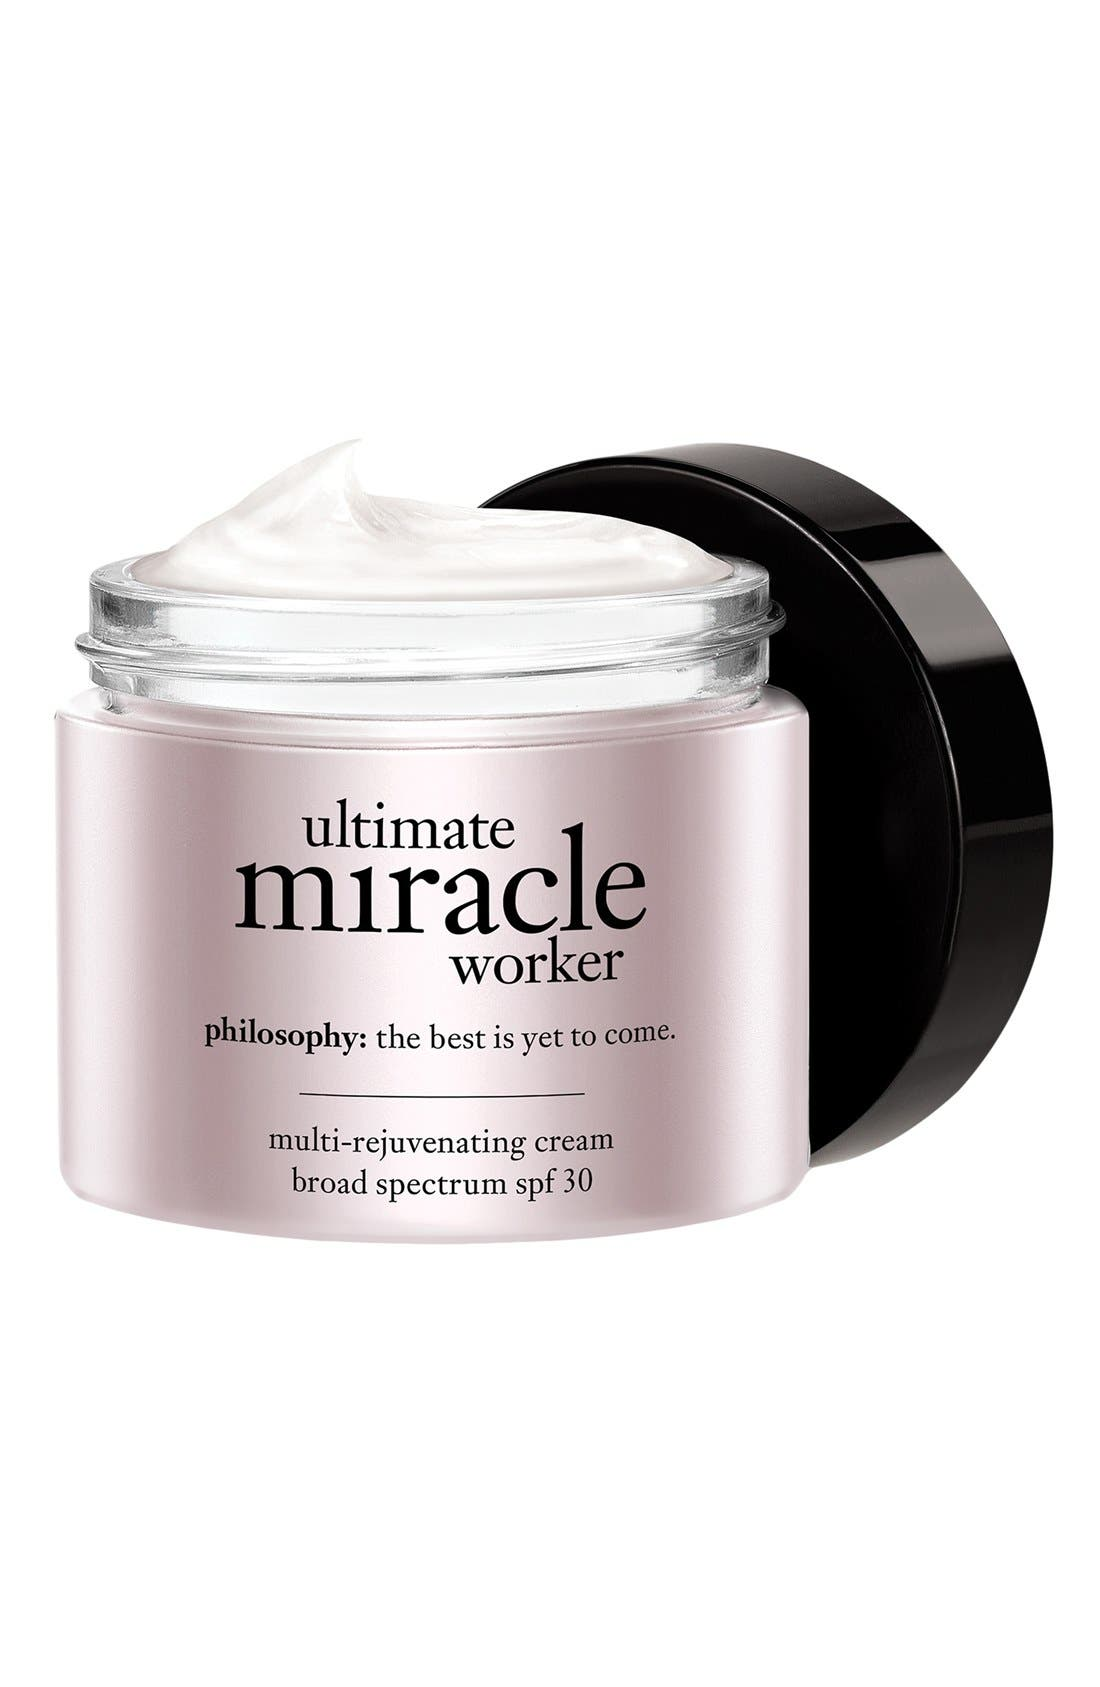 philosophy ultimate miracle worker multi-rejuvenating cream broad spectrum SPF 30